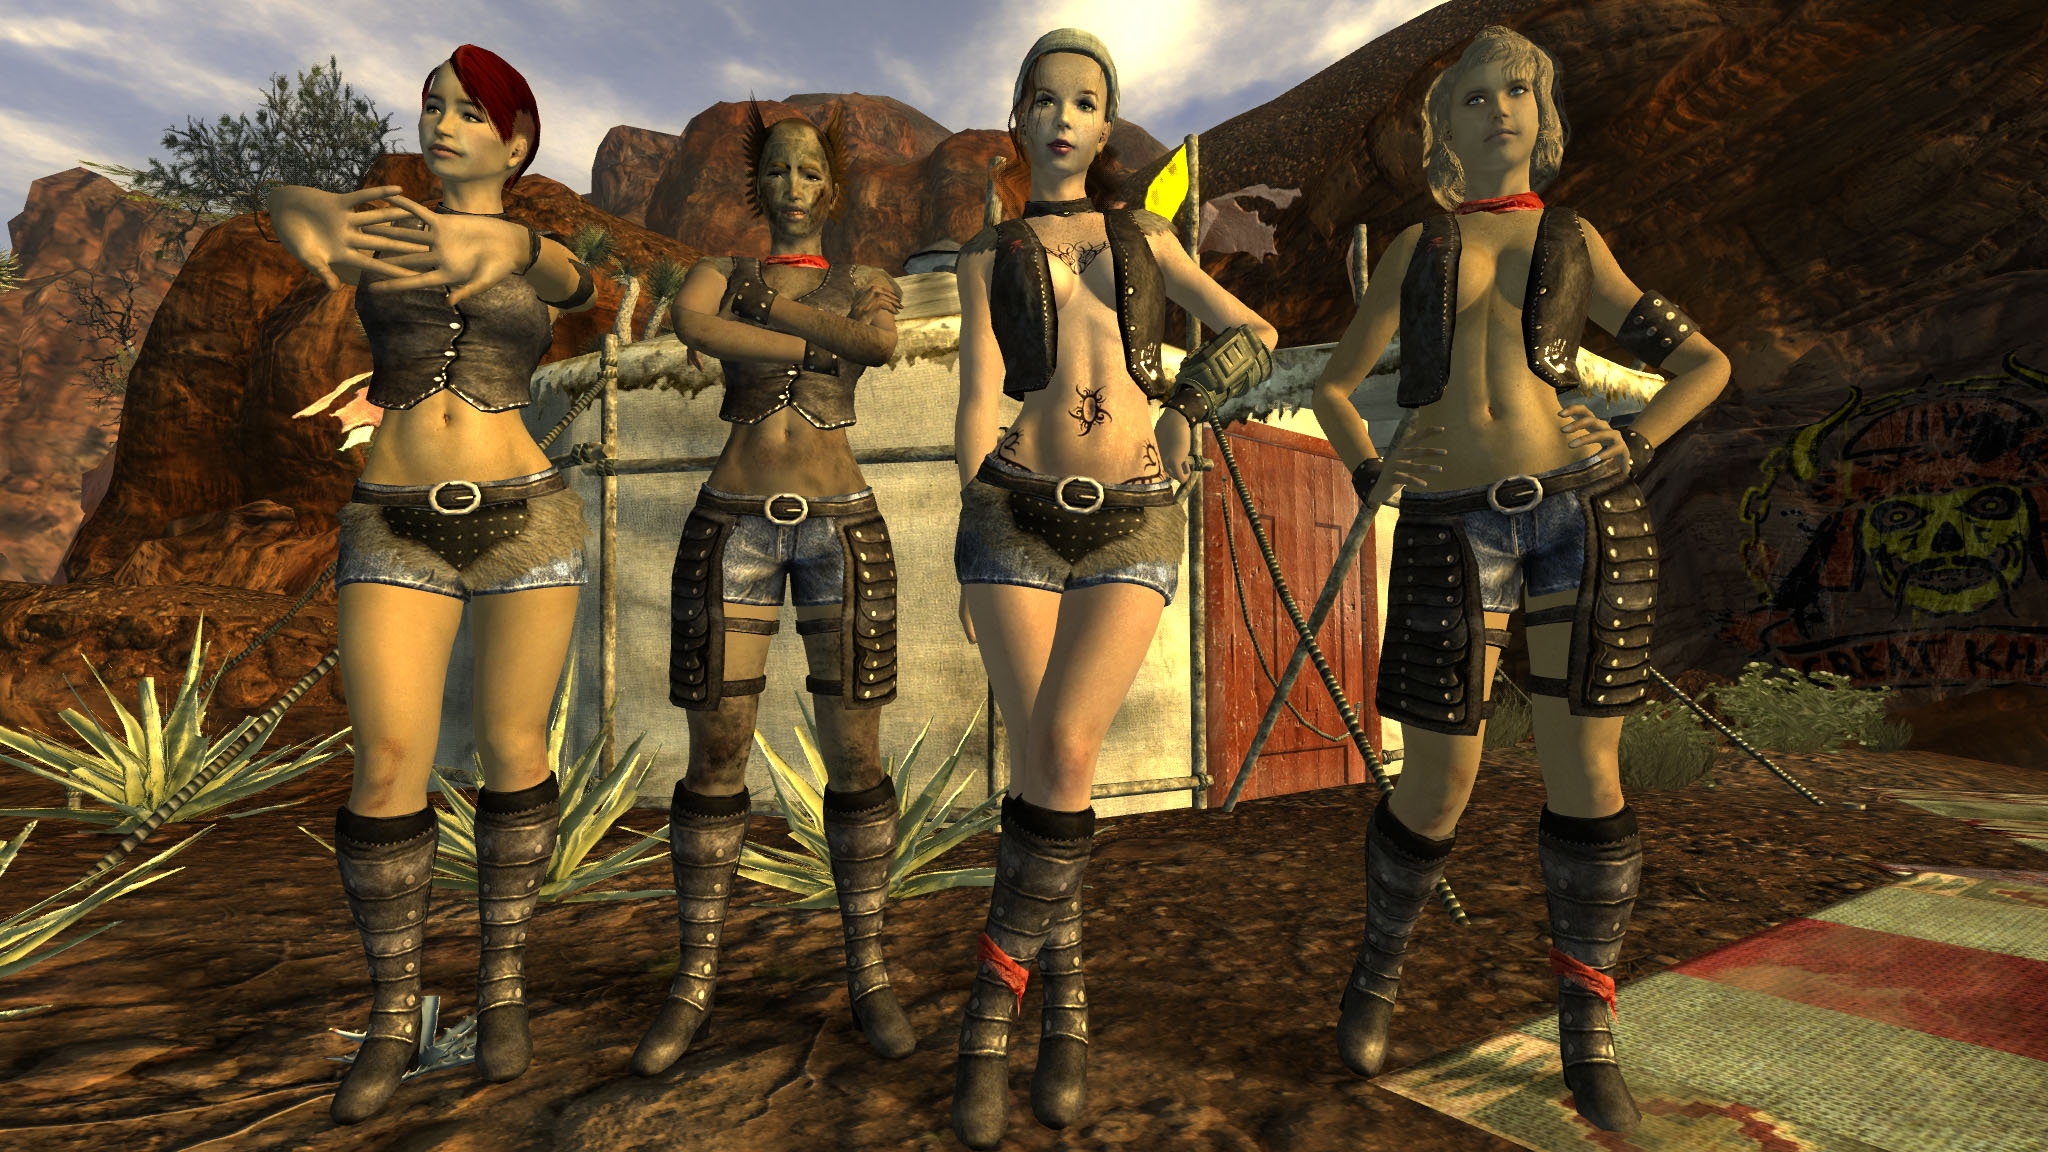 Fall out nv sexout breeders mod - 1 5